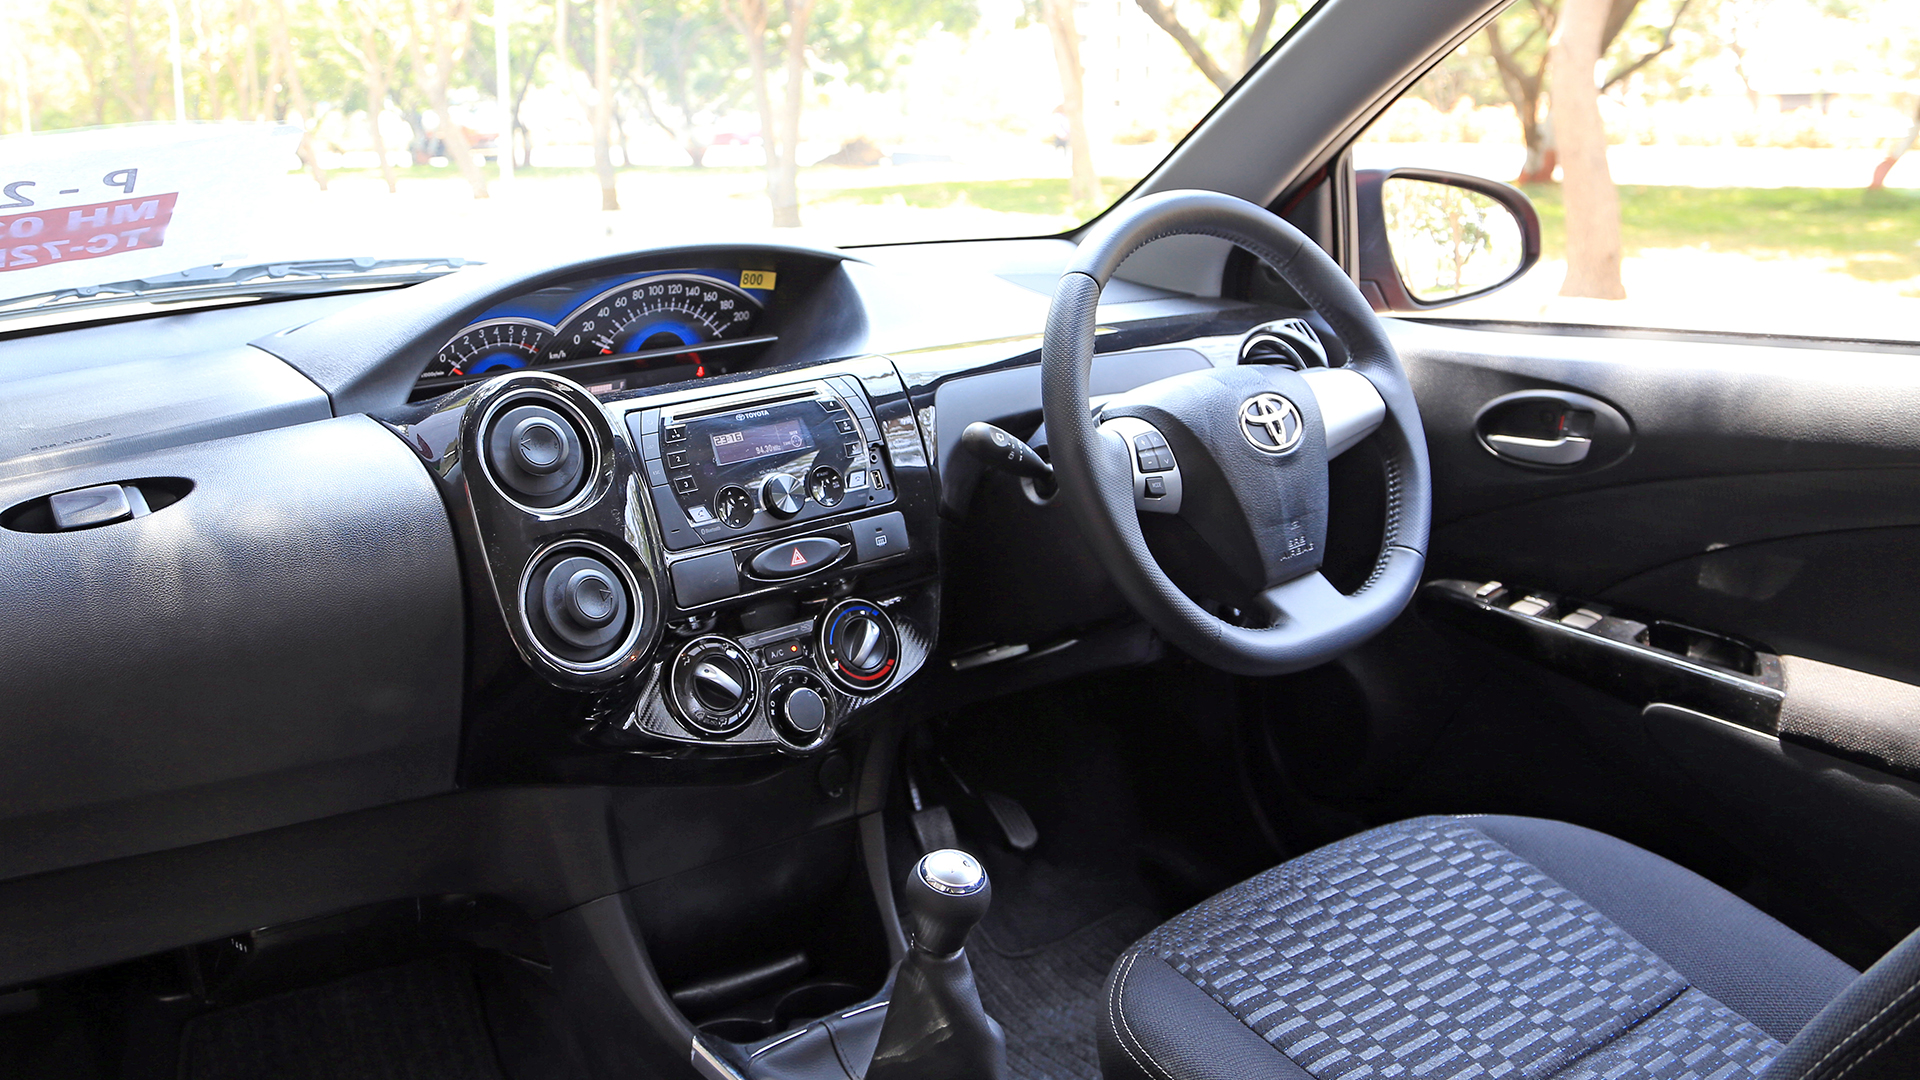 Toyota Etios Cross 2014 - Price, Mileage, Reviews ...